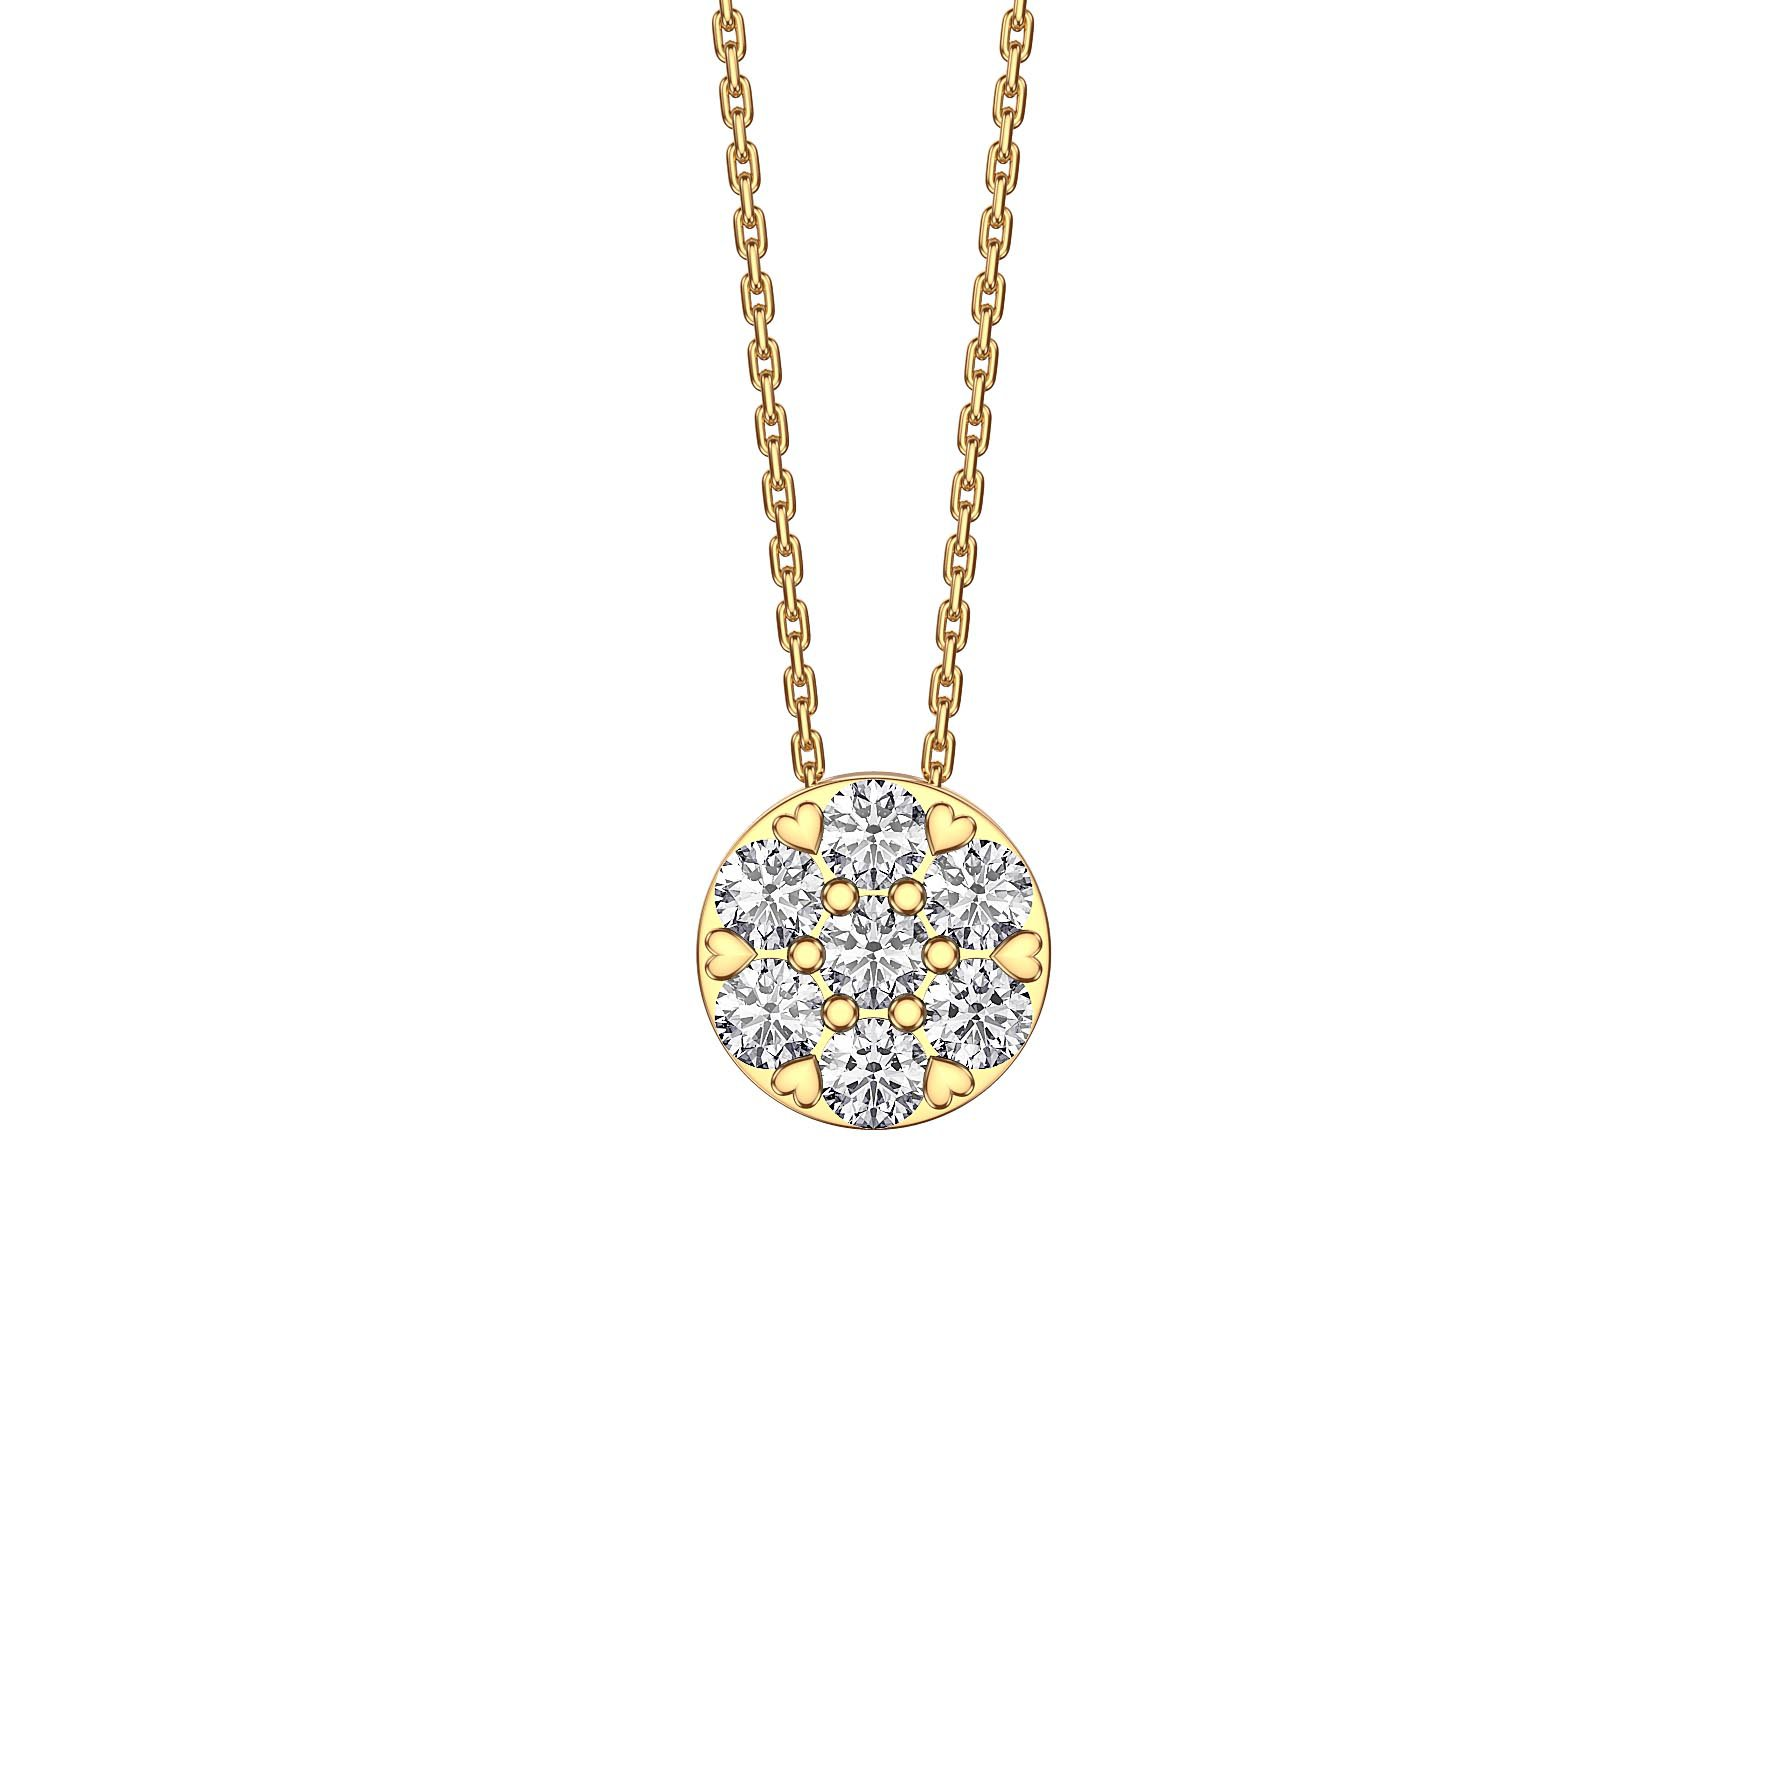 5fa98190f01521 Infinity Pave White Sapphire Halo 18ct Gold Vermeil Pendant. Tap to expand